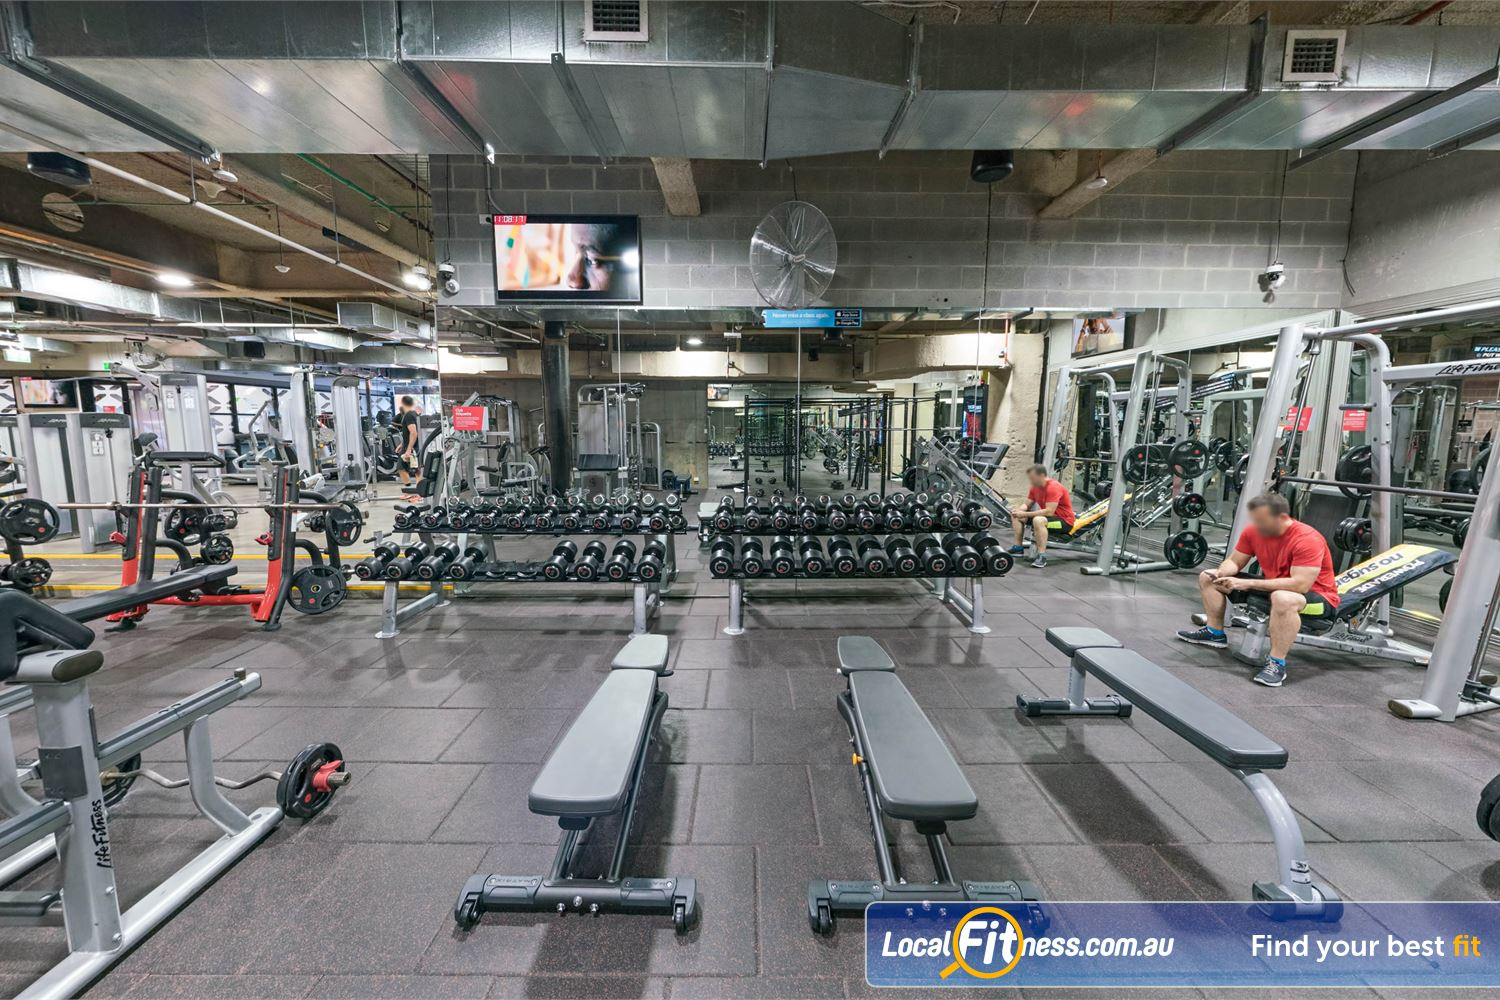 Fitness First Platinum Shelley St Sydney Our 24 hour Sydney gym includes a fully equipped free-weights area.